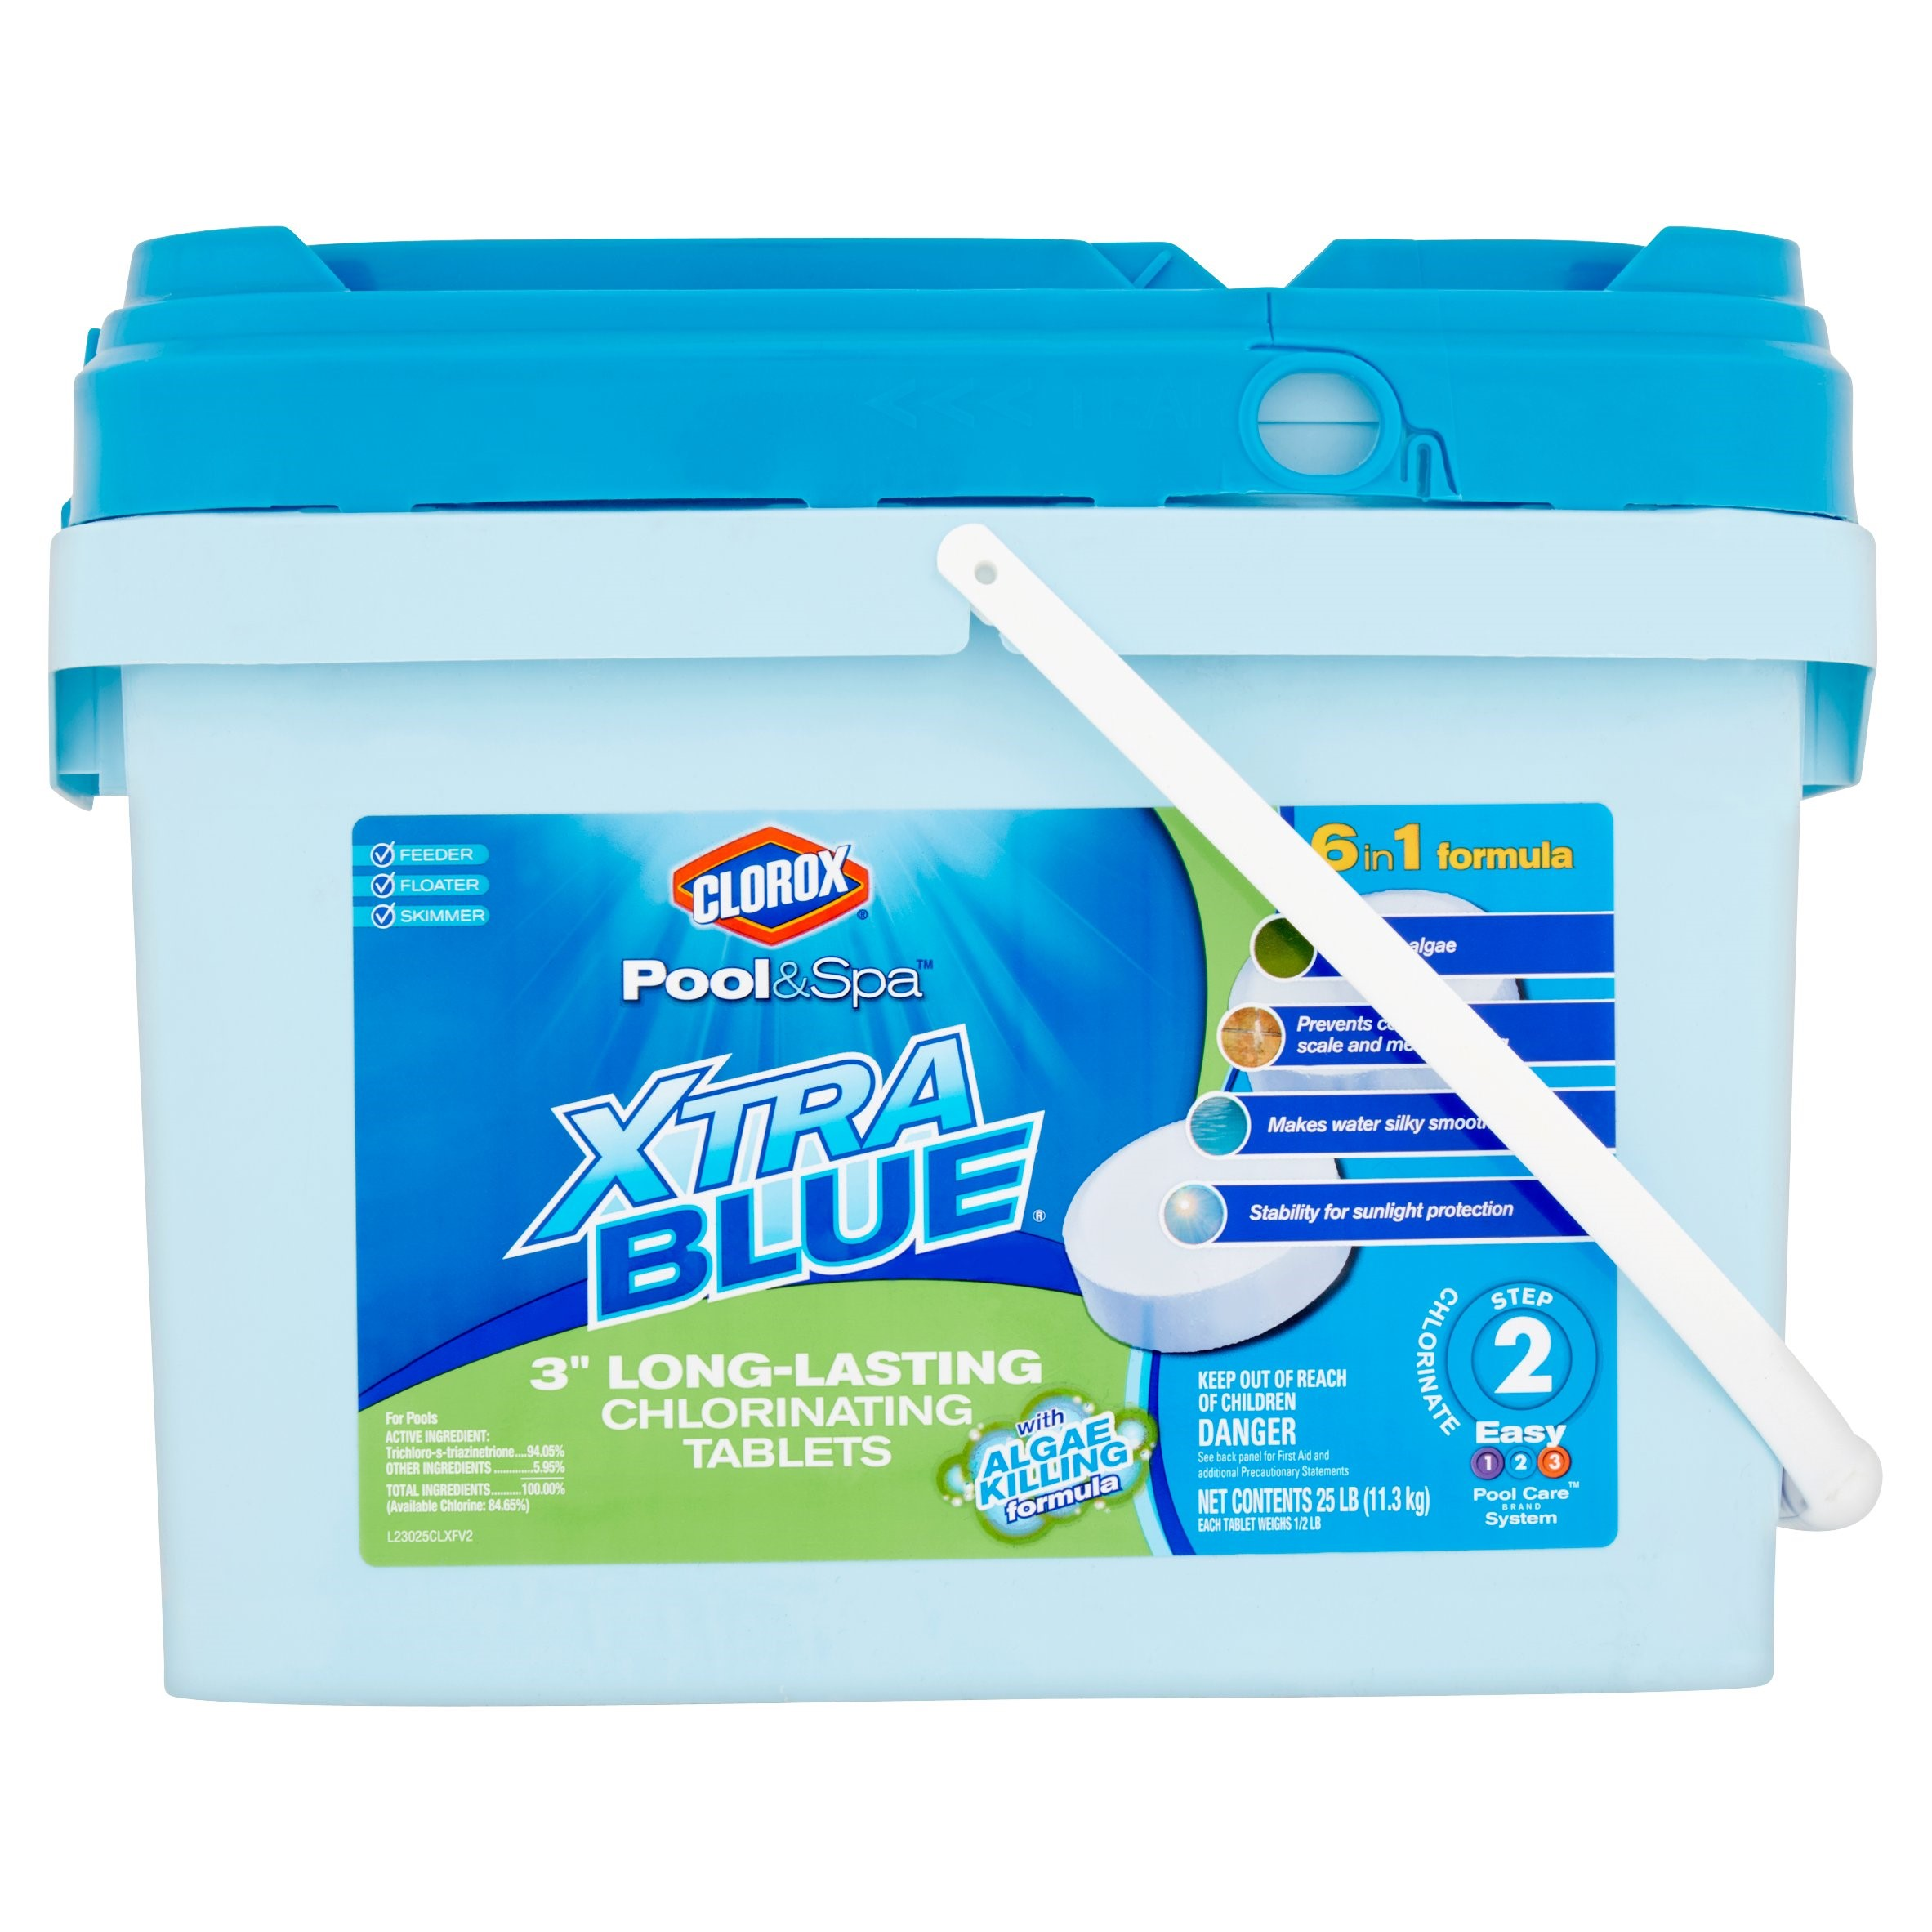 "Clorox Pool&Spa Xtra Blue 3"" Long-Lasting Chlorinating Tablets Pool Chlorine, 25 lb"